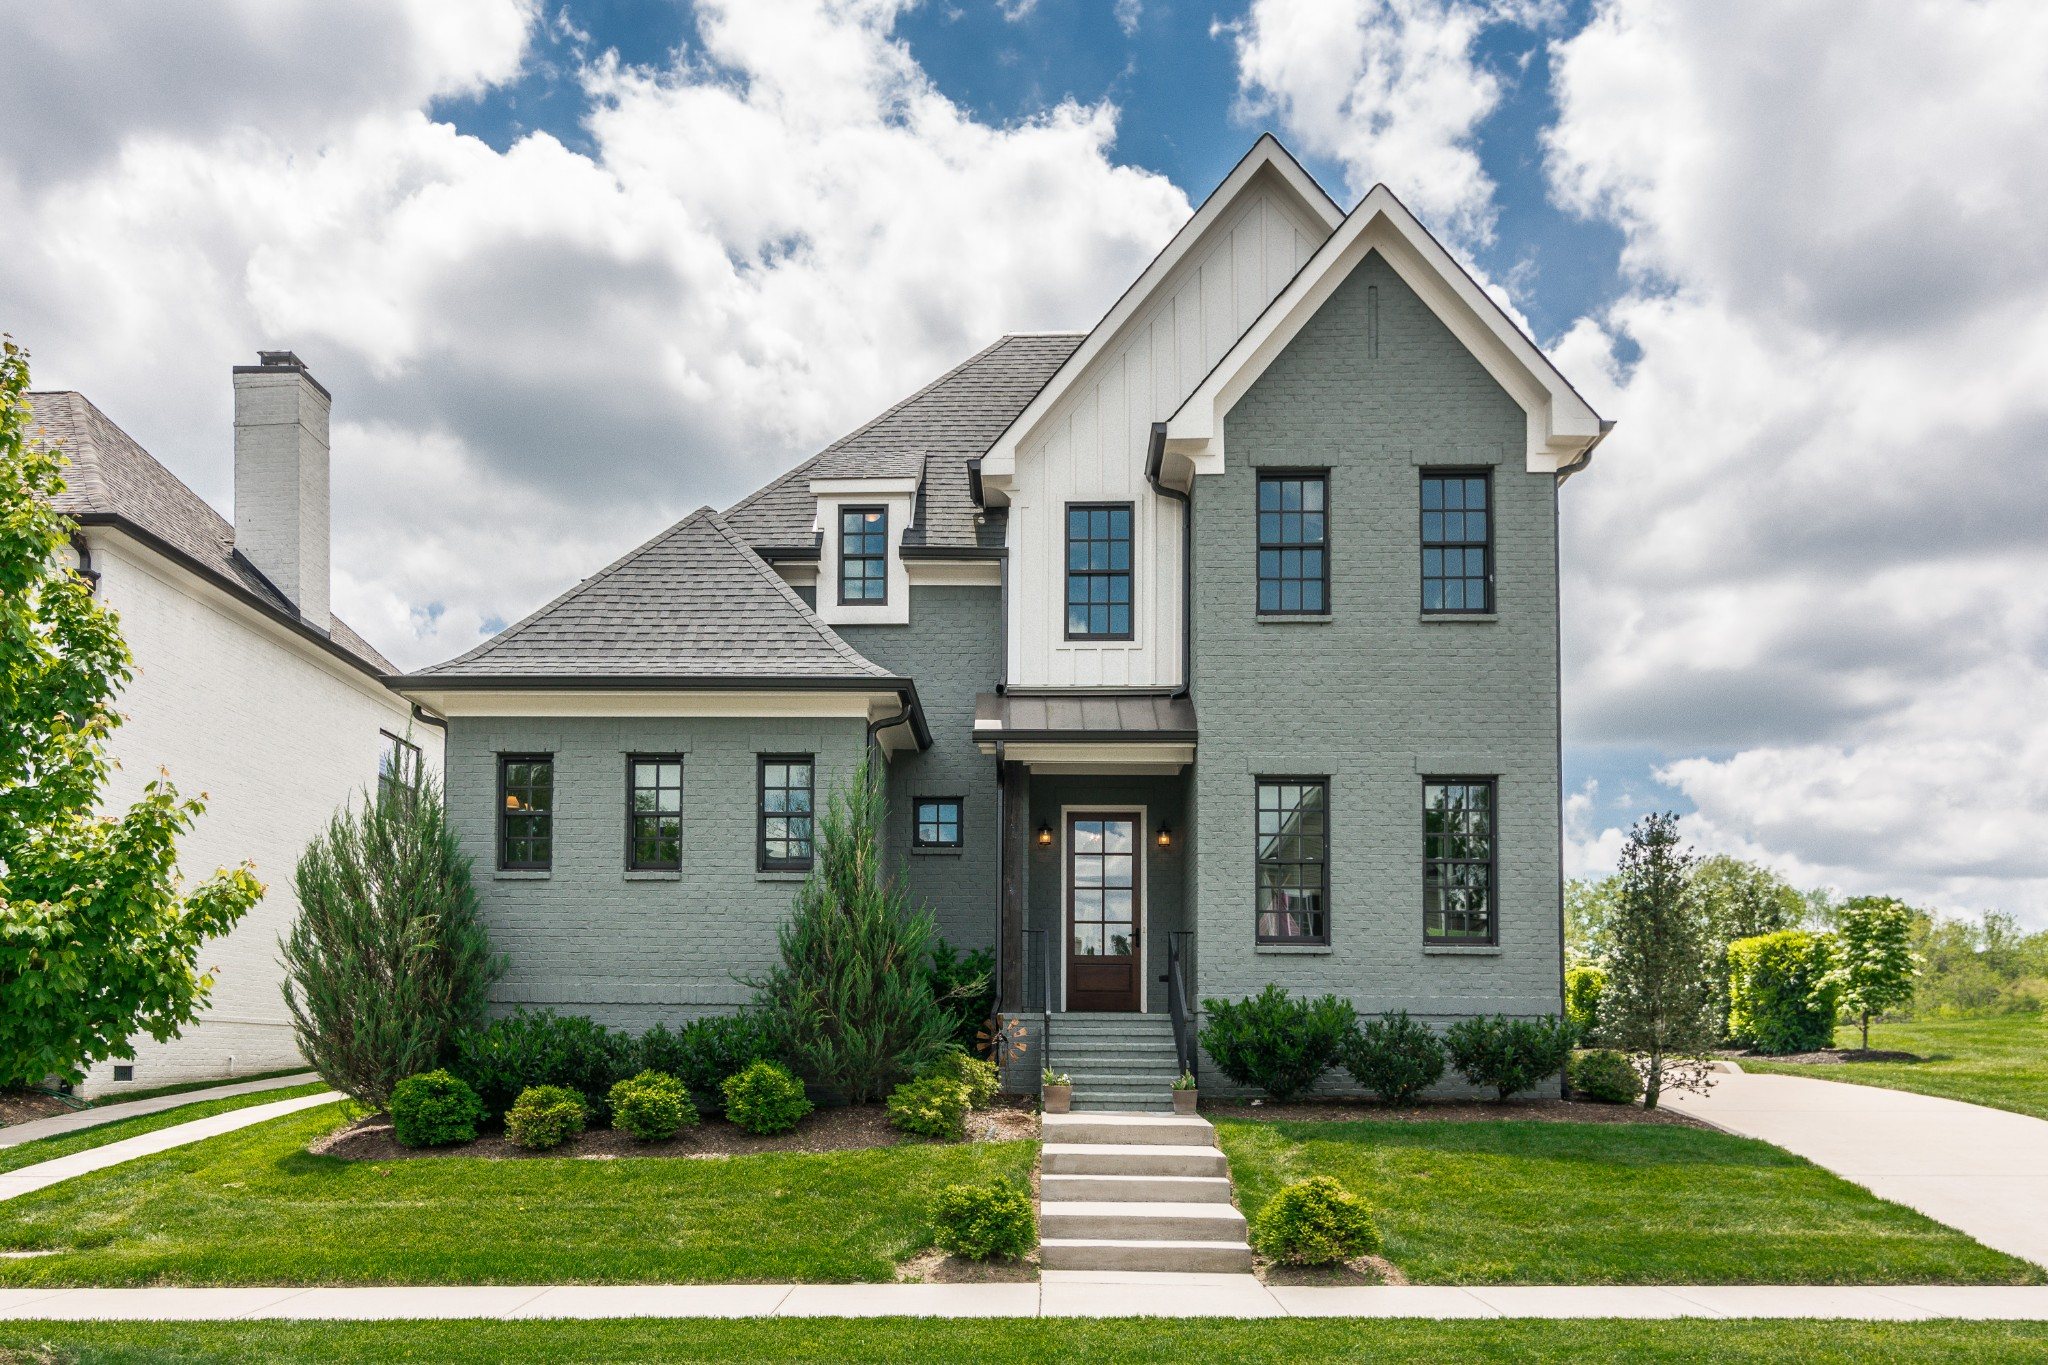 This home won't last long!! This stunning, custom home is built in this coveted, luxury cul-de-sac with only 13 homes!! Enjoy a one-of-a-kind neighborhood just down the street from Williamson County schools. This all-brick home is perfect for entertaining and features a large open kitchen with beautiful s/s appliances, two main-floor bedrooms,  gorgeous hardwoods, travertine tile, barn doors, a rear porch, tons of storage and lots more.  This home will exceed your expectations!